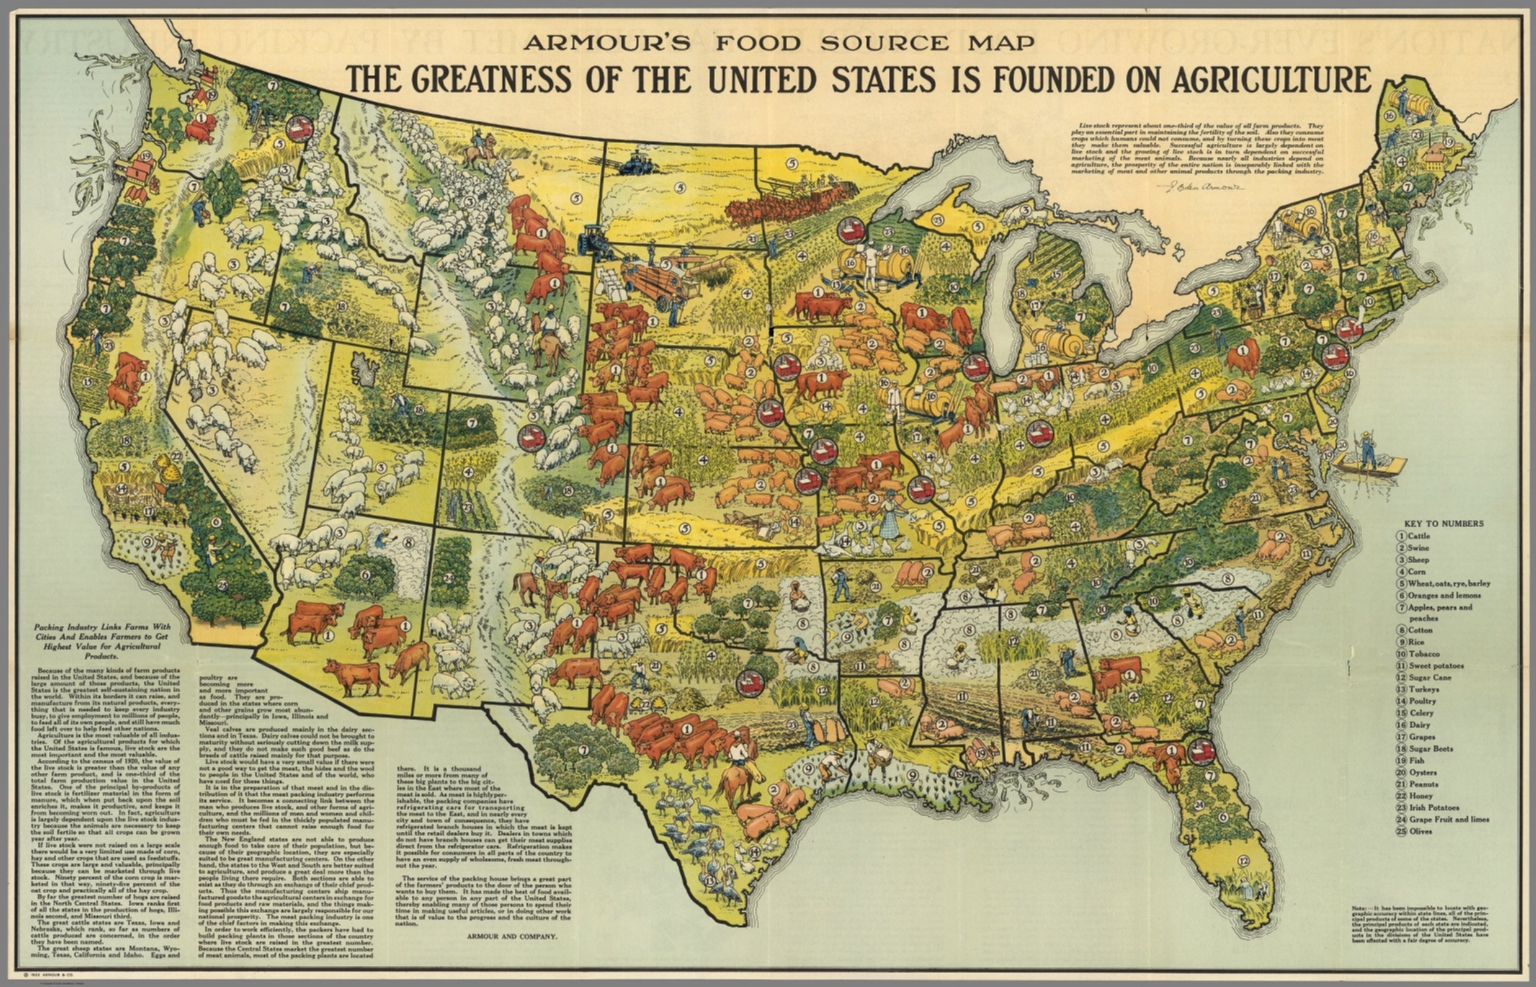 Armours food source map david rumsey historical map collection armours food source map sciox Image collections